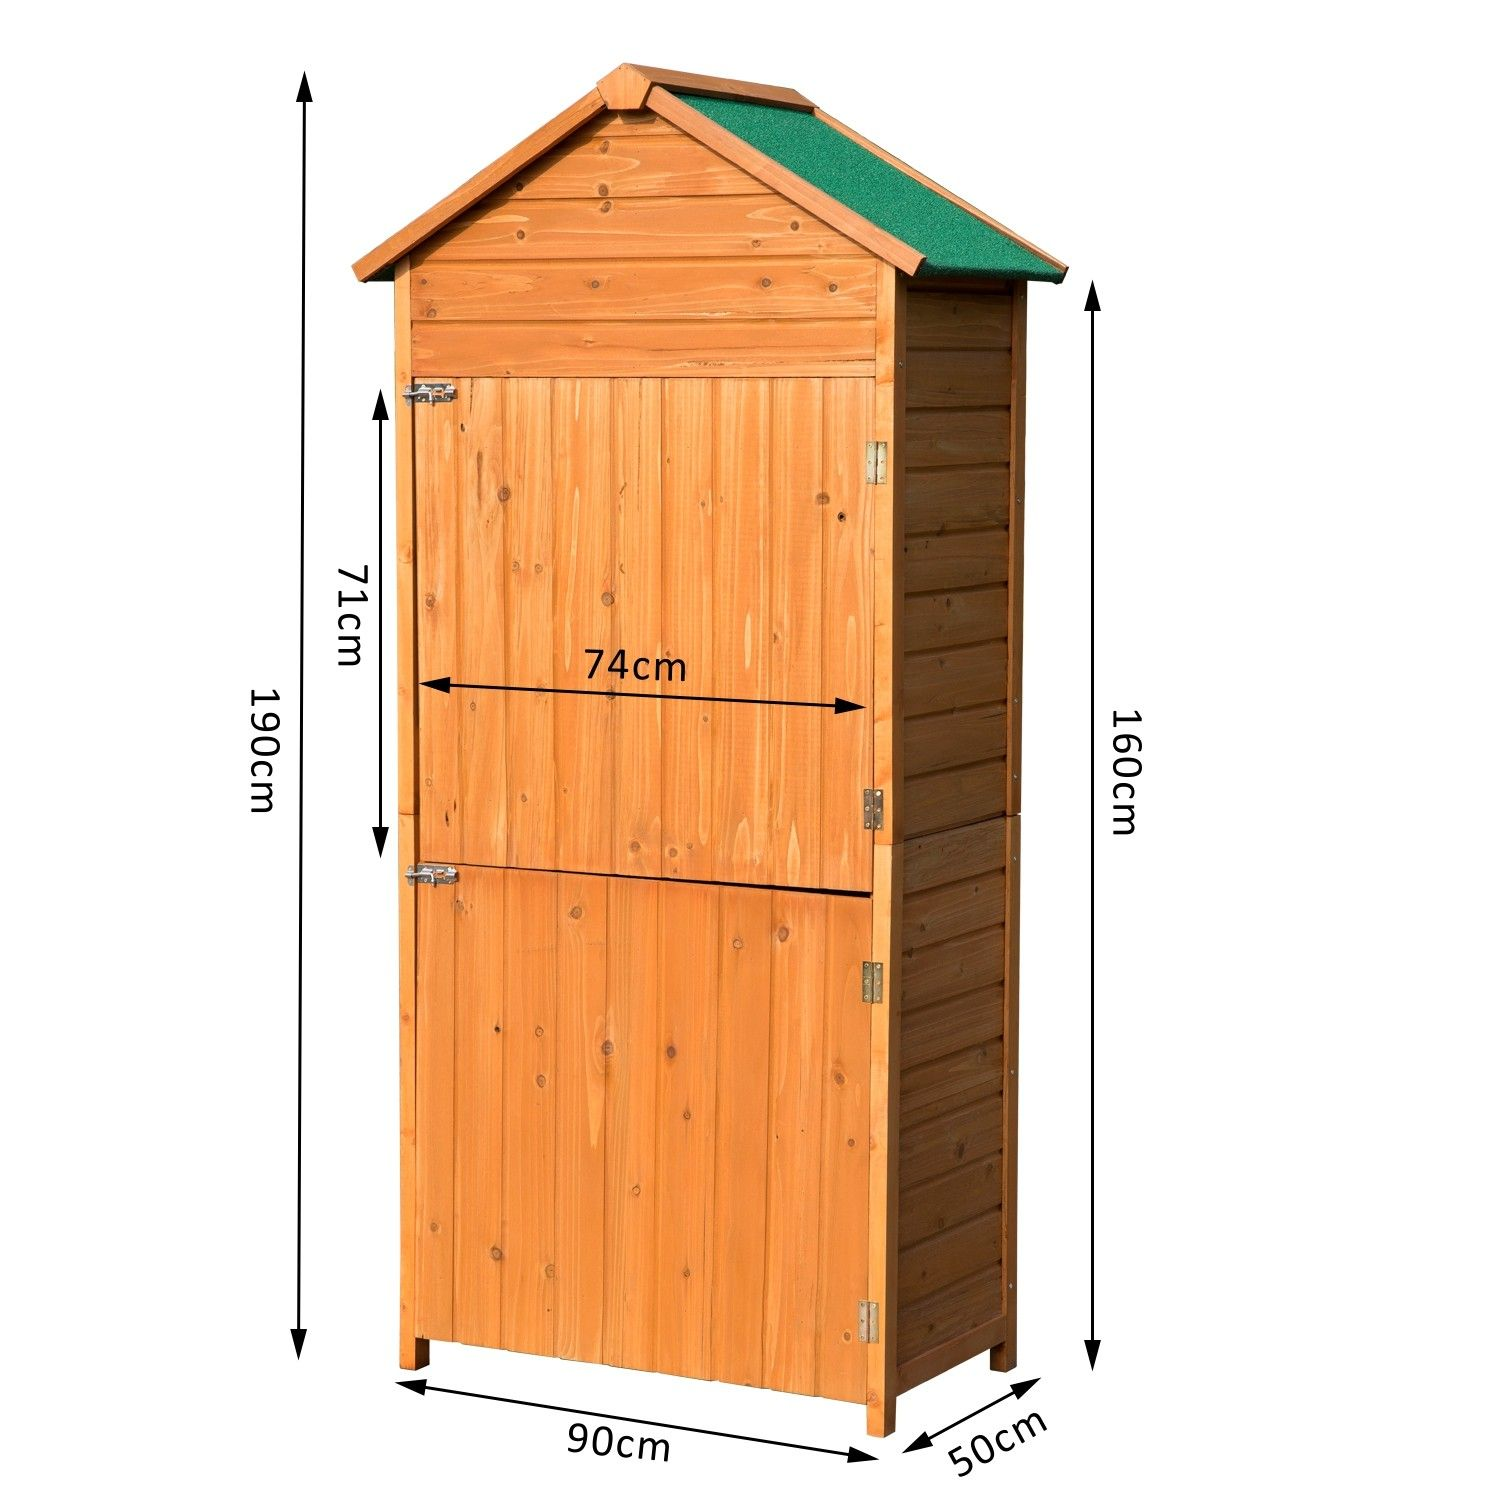 Small Wooden Garden Storage Shed Outsunny 90 x 50cm